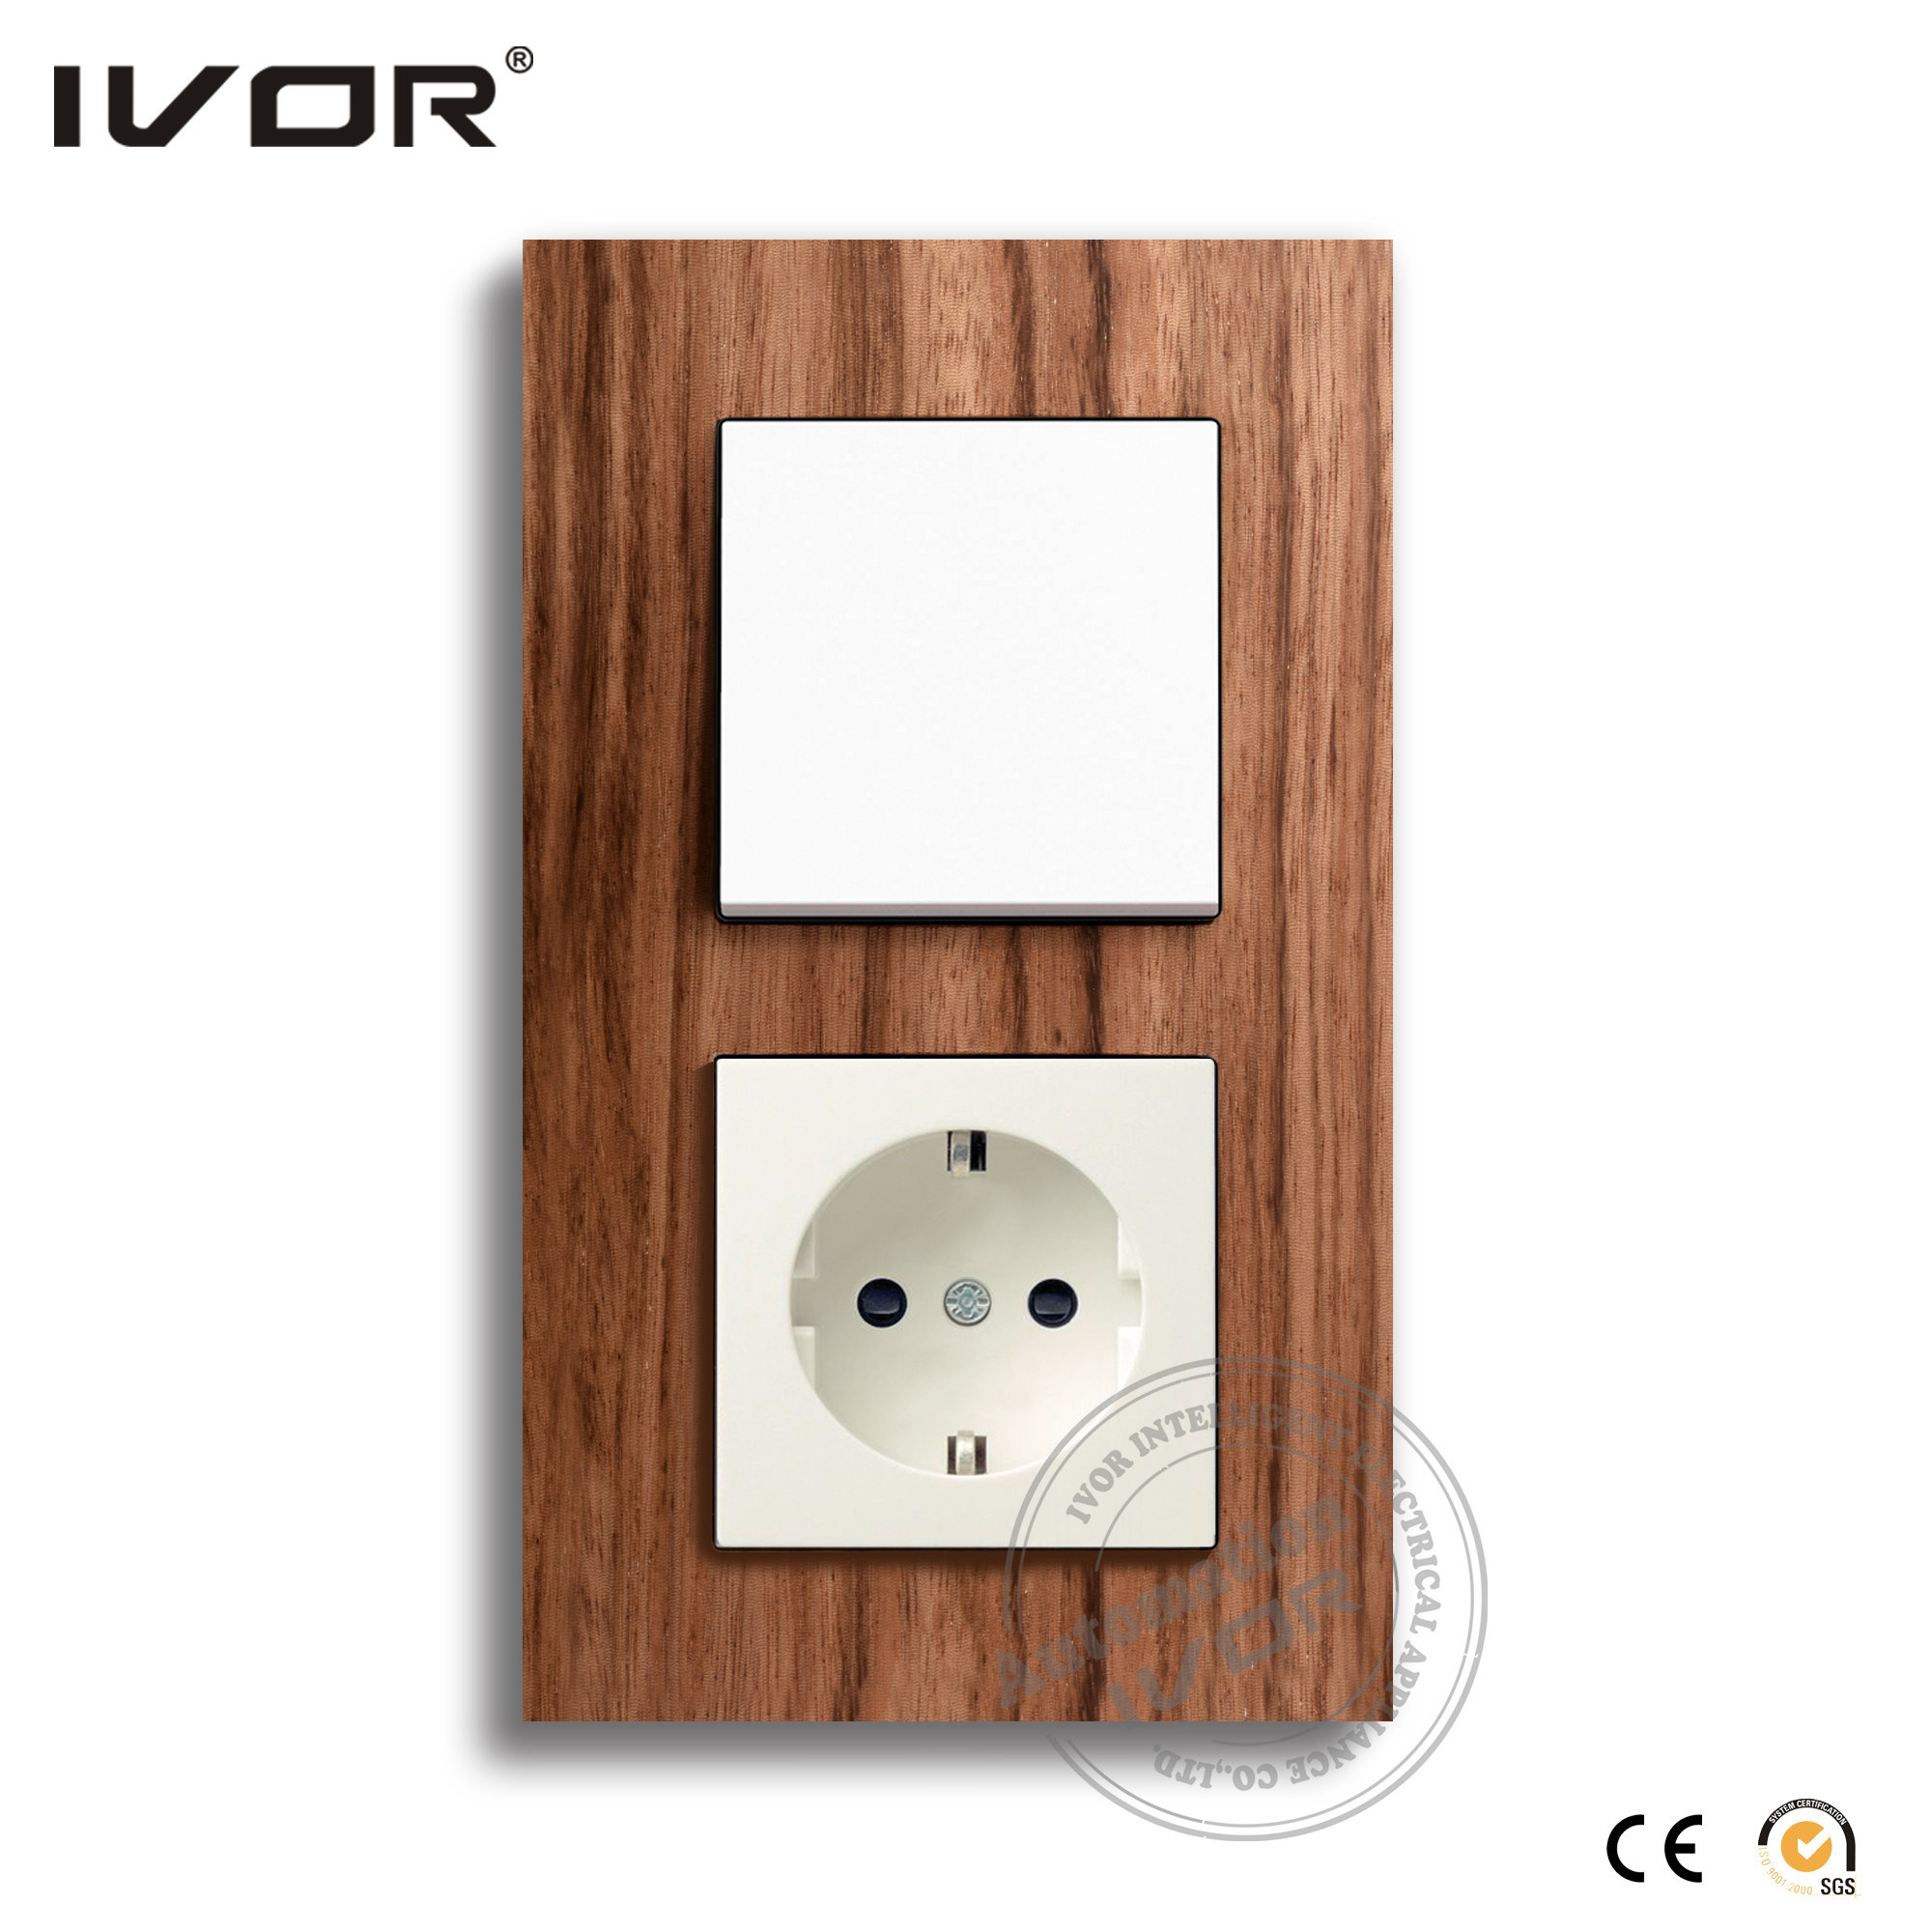 Ivor EU Standard Wall Switch and Socket